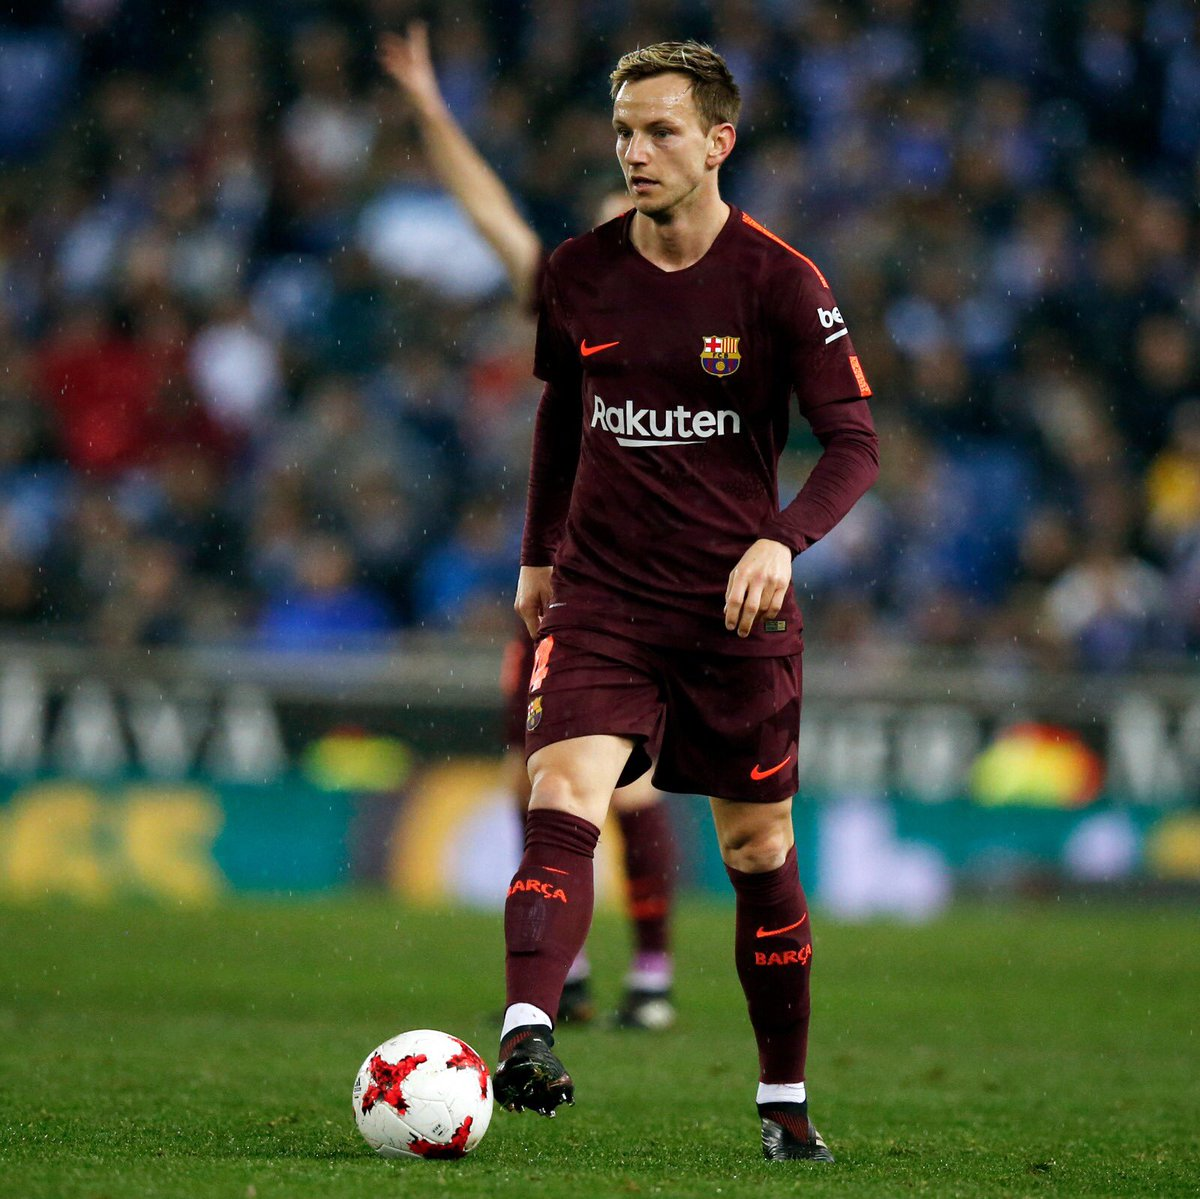 Nadie dijo que esto pudiera ser fácil. A levantarse y darlo todo en la vuelta con nuestra afición 💪 Nobody said that this it could be easy... We must get up and give everything in the second leg with our supporters #ForçaBarça 🔵🔴